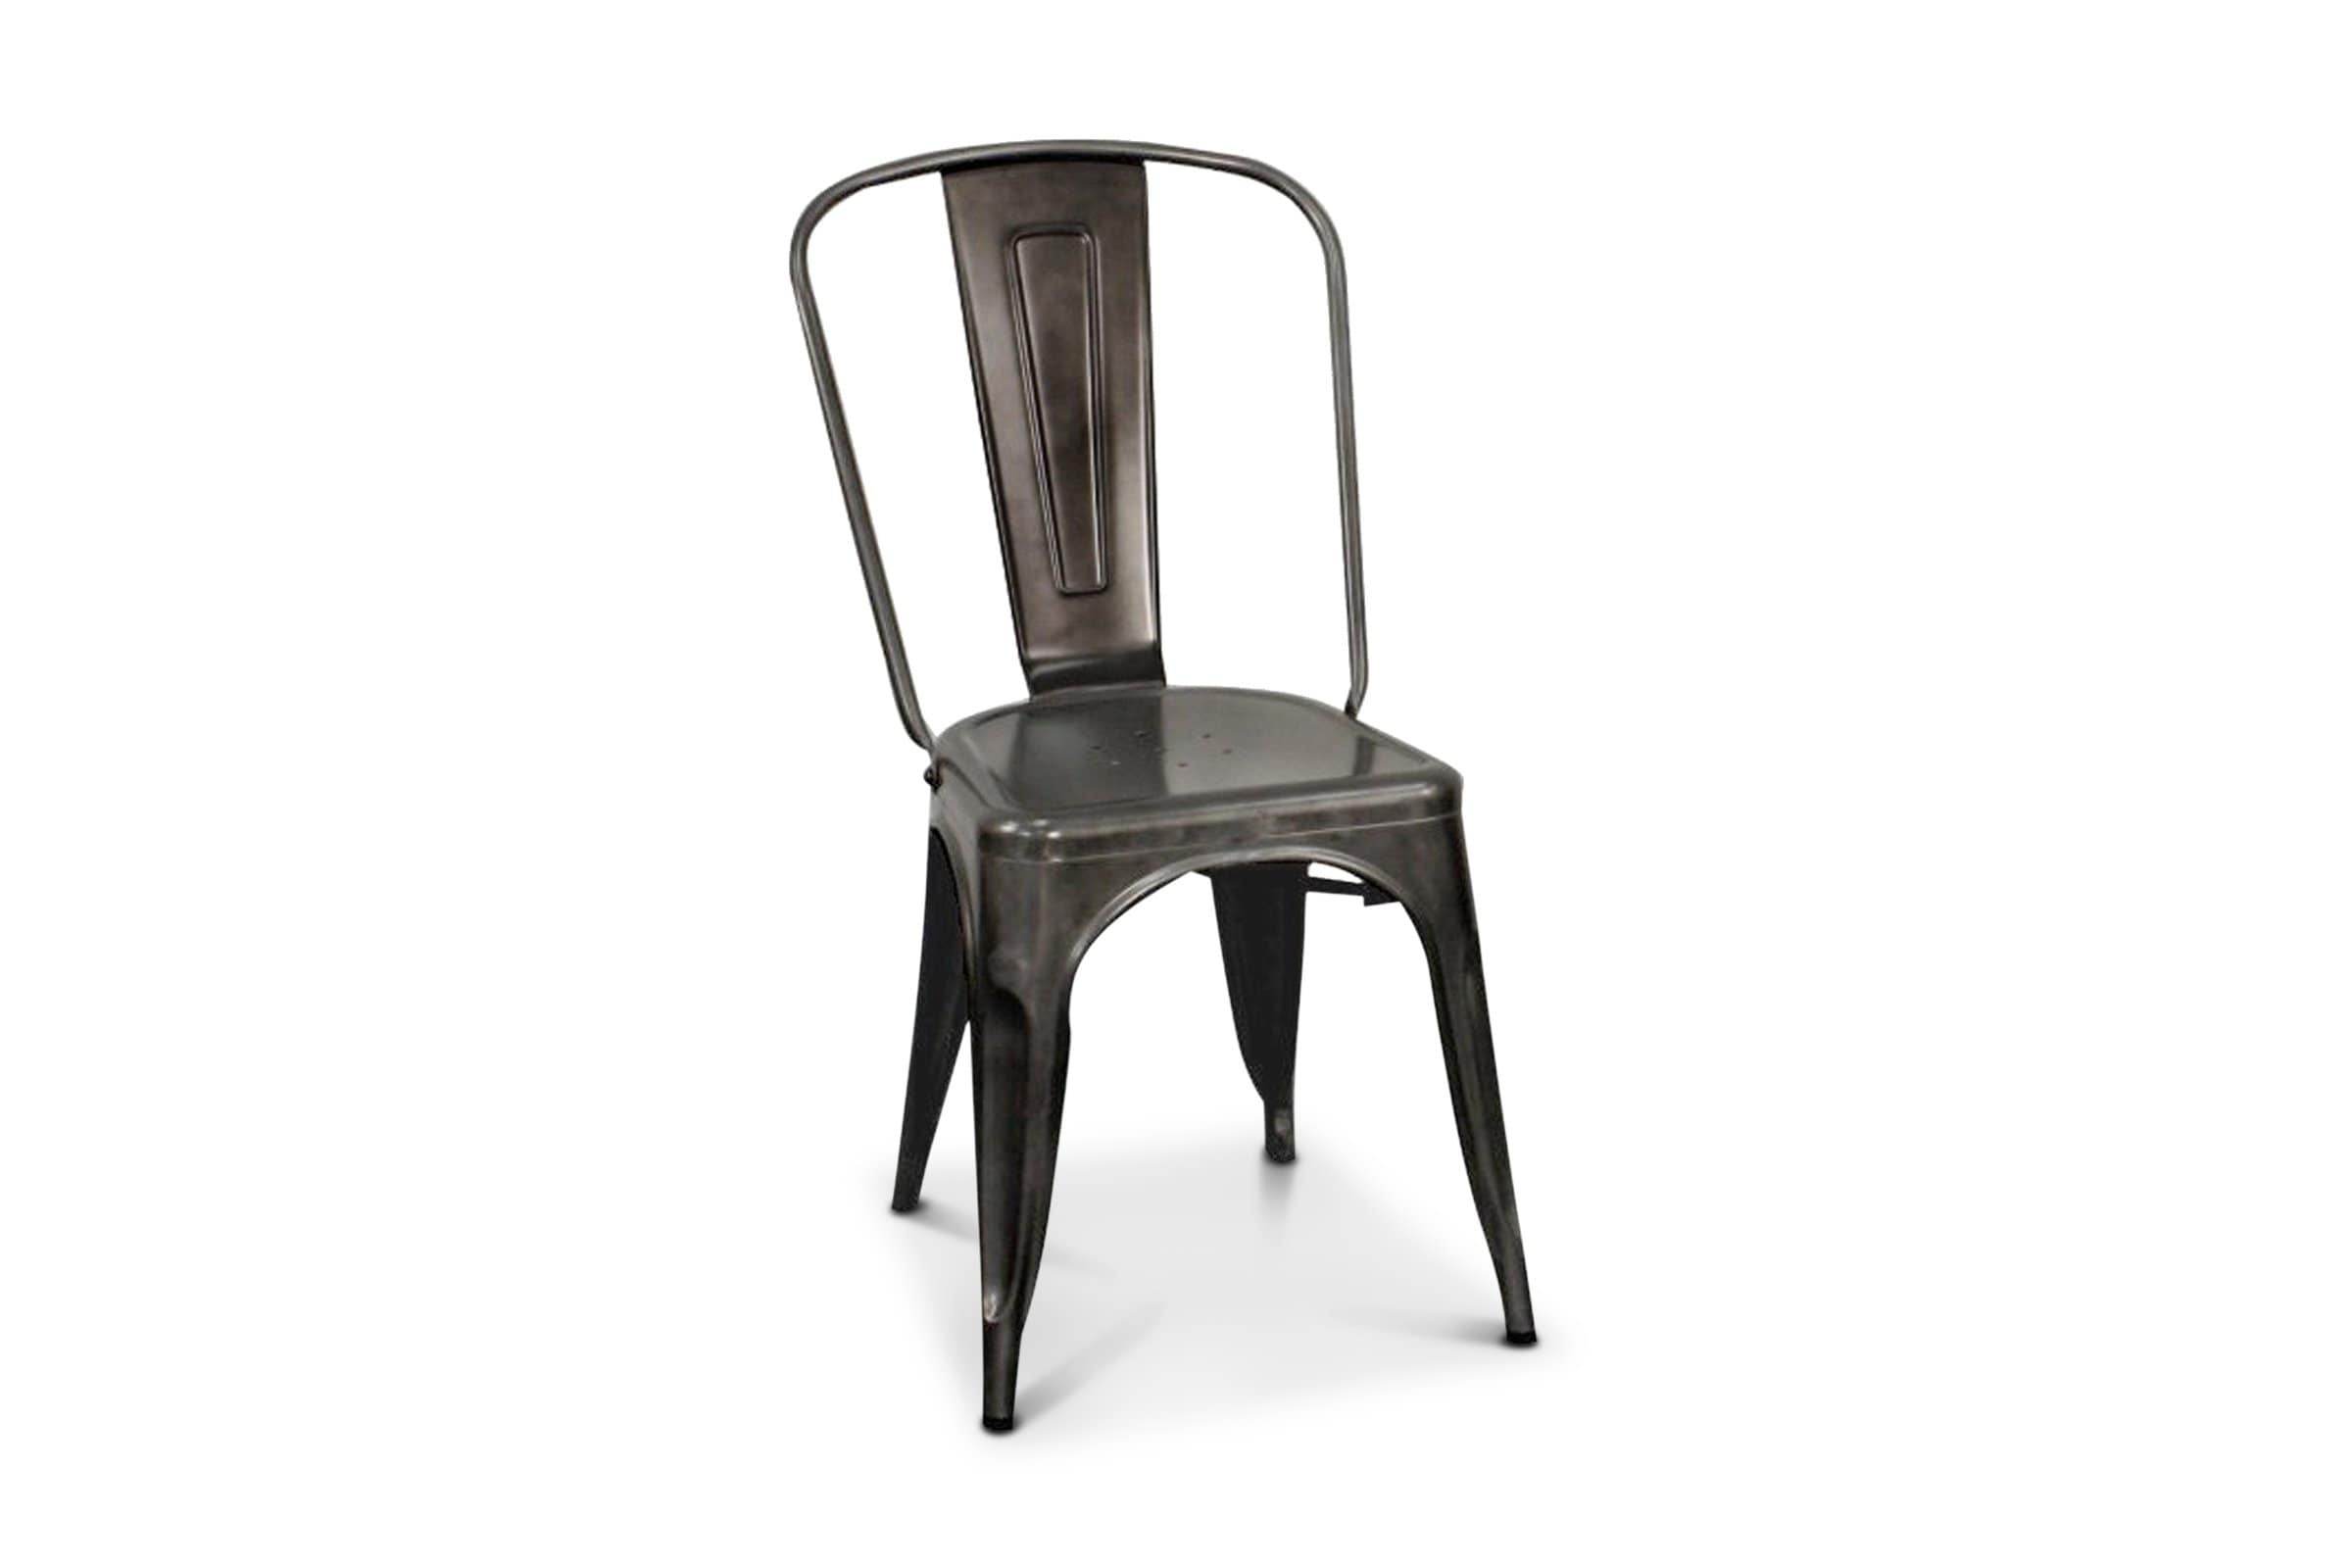 Oxford Metal Chair GUNMETAL - SET OF 4 - - Accent Chair - Furniture sold by Apt2B